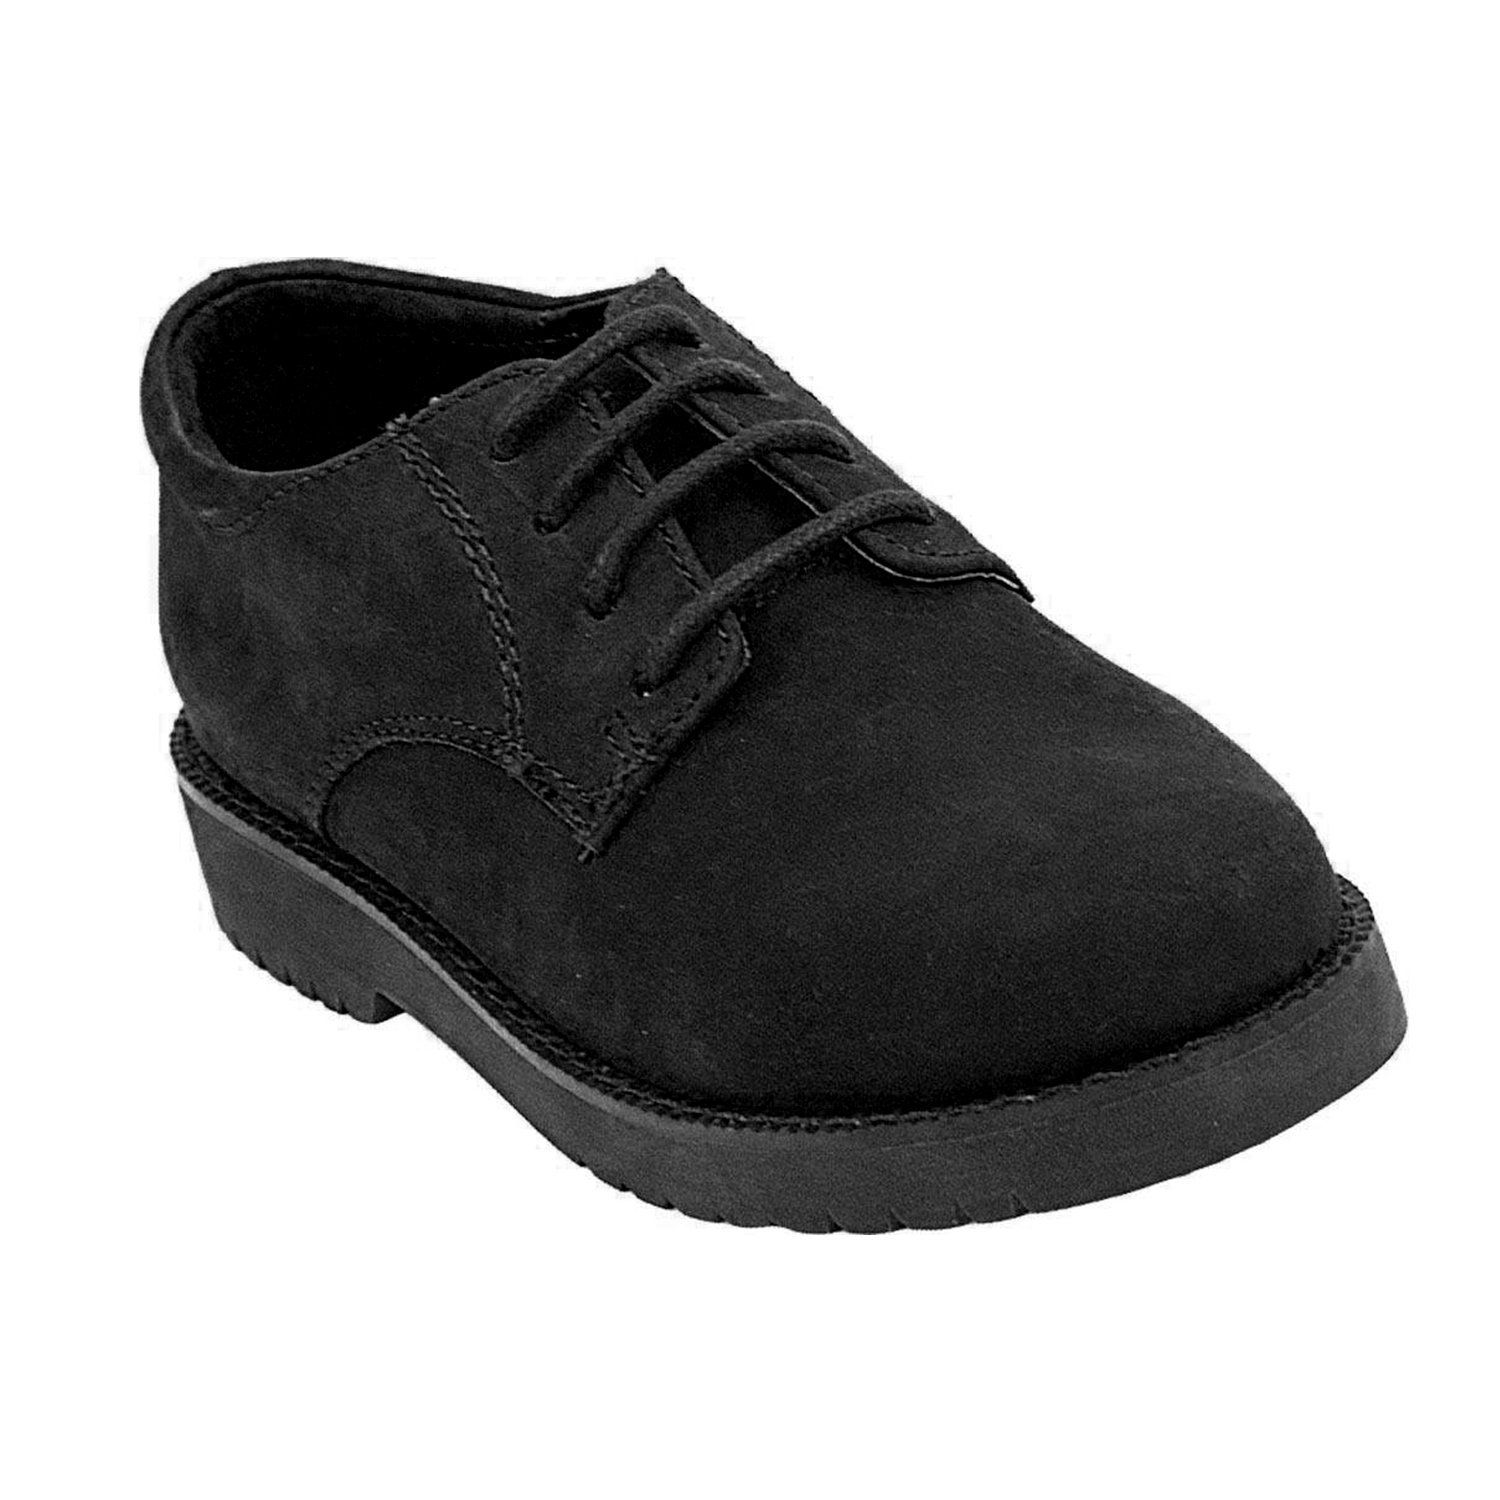 Academie Gear James Stitched Oxford-Style Leather Penny Loafers for Women and Men with Non-Marking Soles, in Black Nubuck Oil Size 7 M